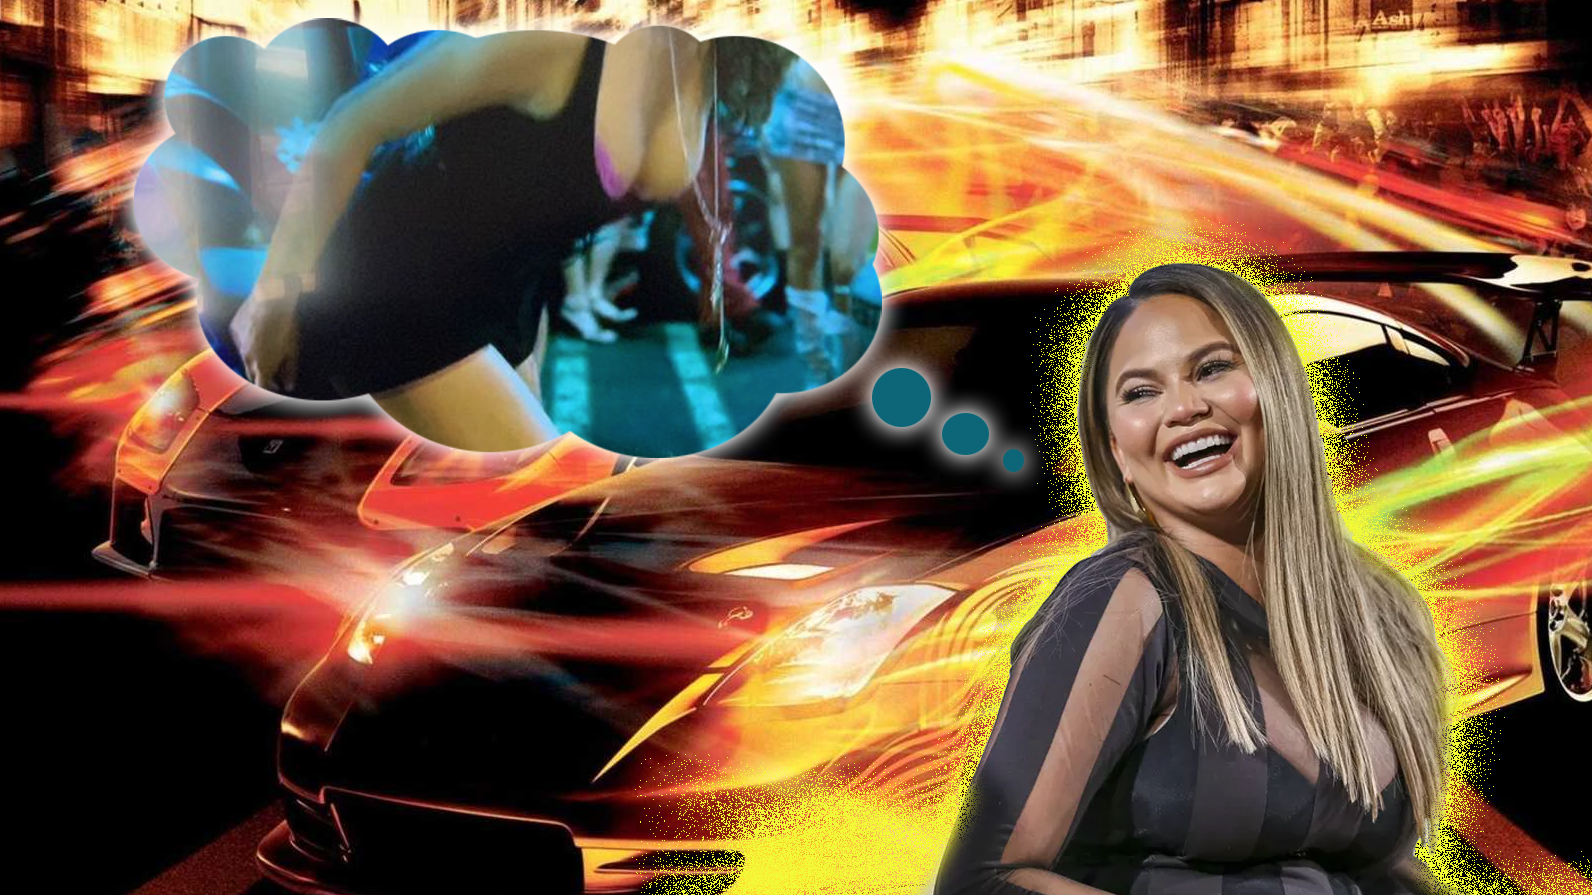 Chrissy Teigen Reveals That Some Of Her Had An Uncredited Role In The Fast And Furious: Tokyo Drift